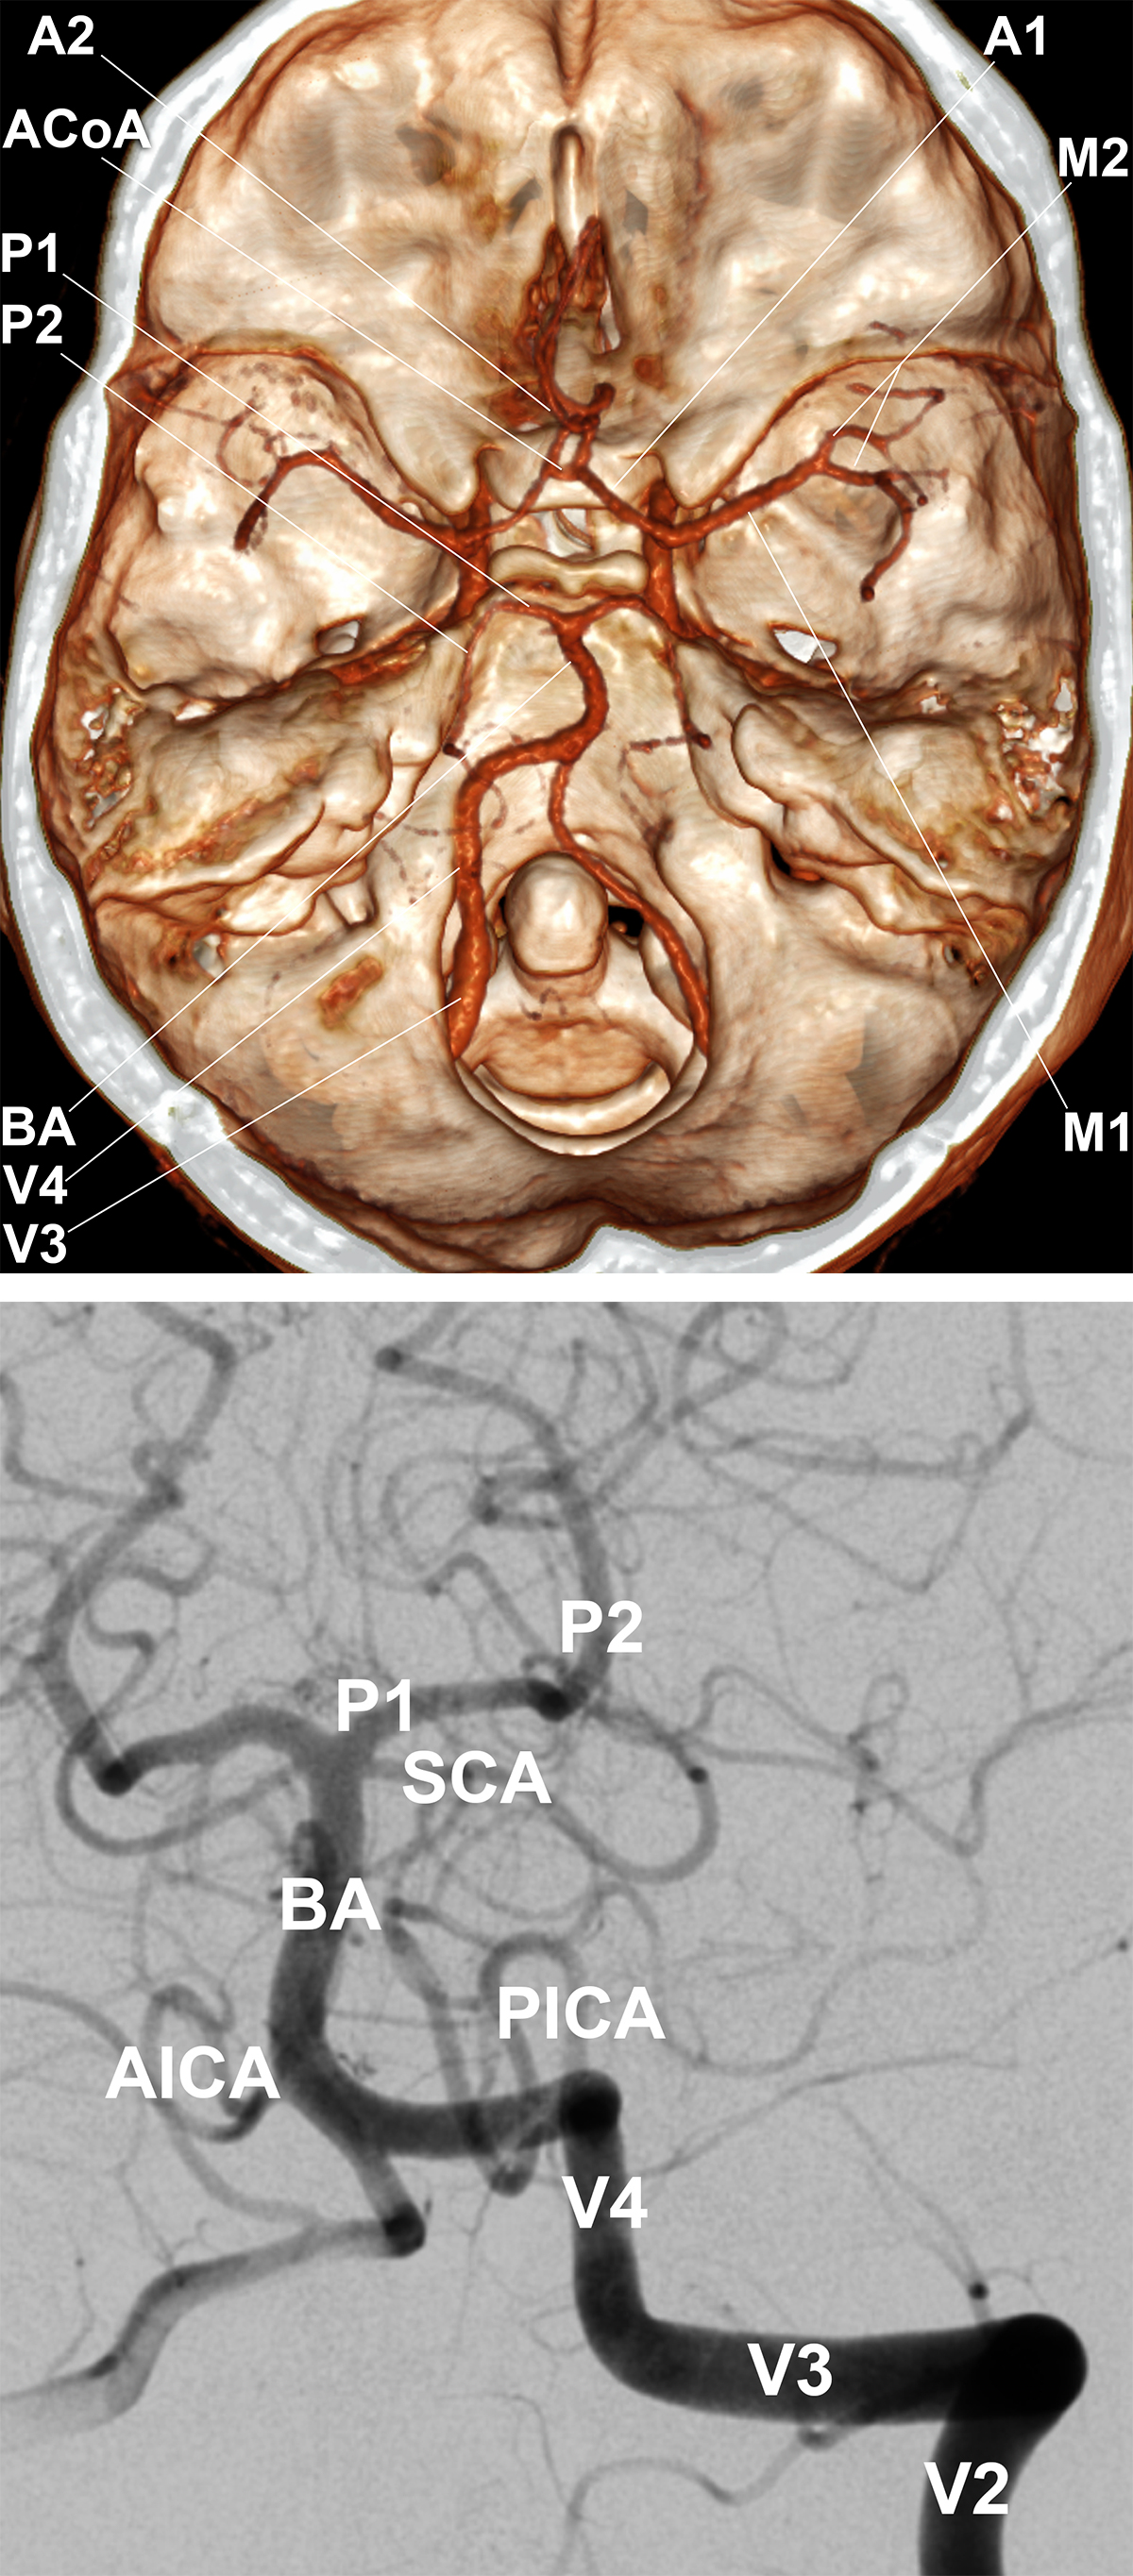 Figure 6: Reconstruction of CT Angiography demonstrating the Circle of Willis and its more distal branches (left). The distal cervical and intracranial posterior circulation by DSA (right).